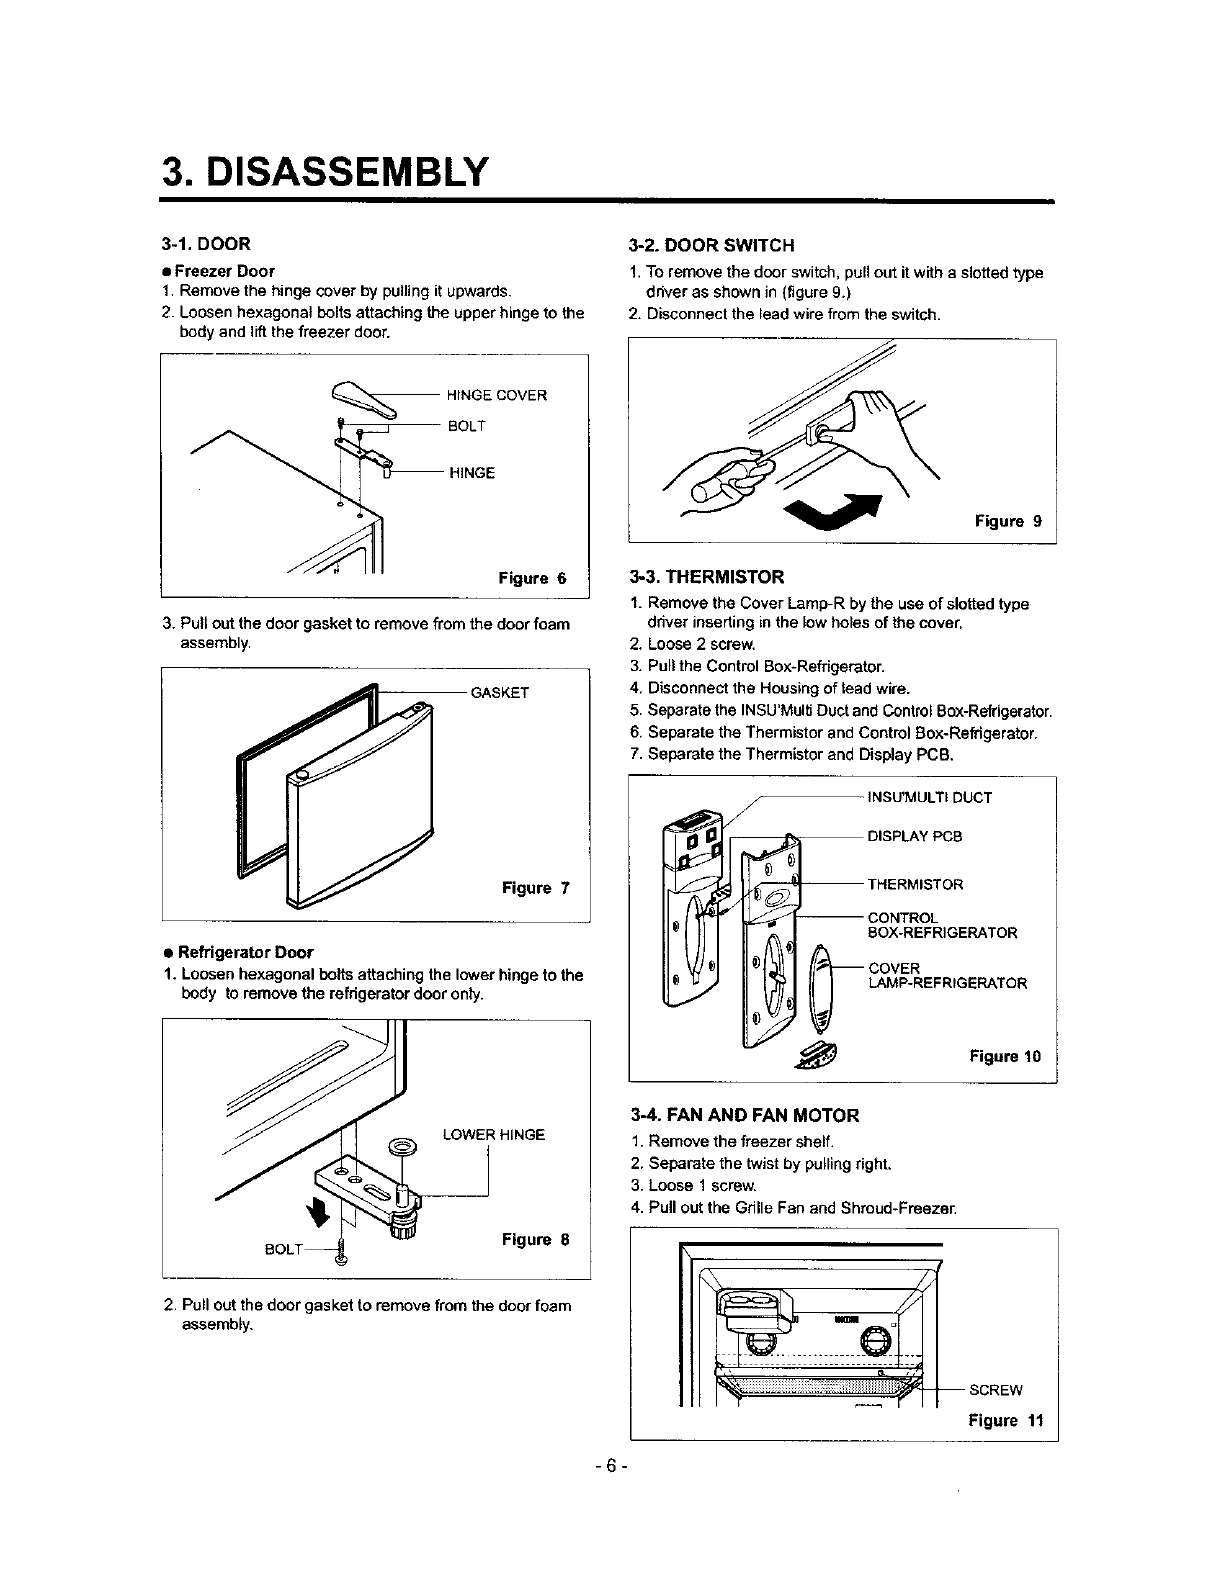 Lg Lrtp0931w User Manual Top Mount Manuals And Guides L0301146 Low Temperature Defrost Timer Wiring Diagram Box 3 Disassembly